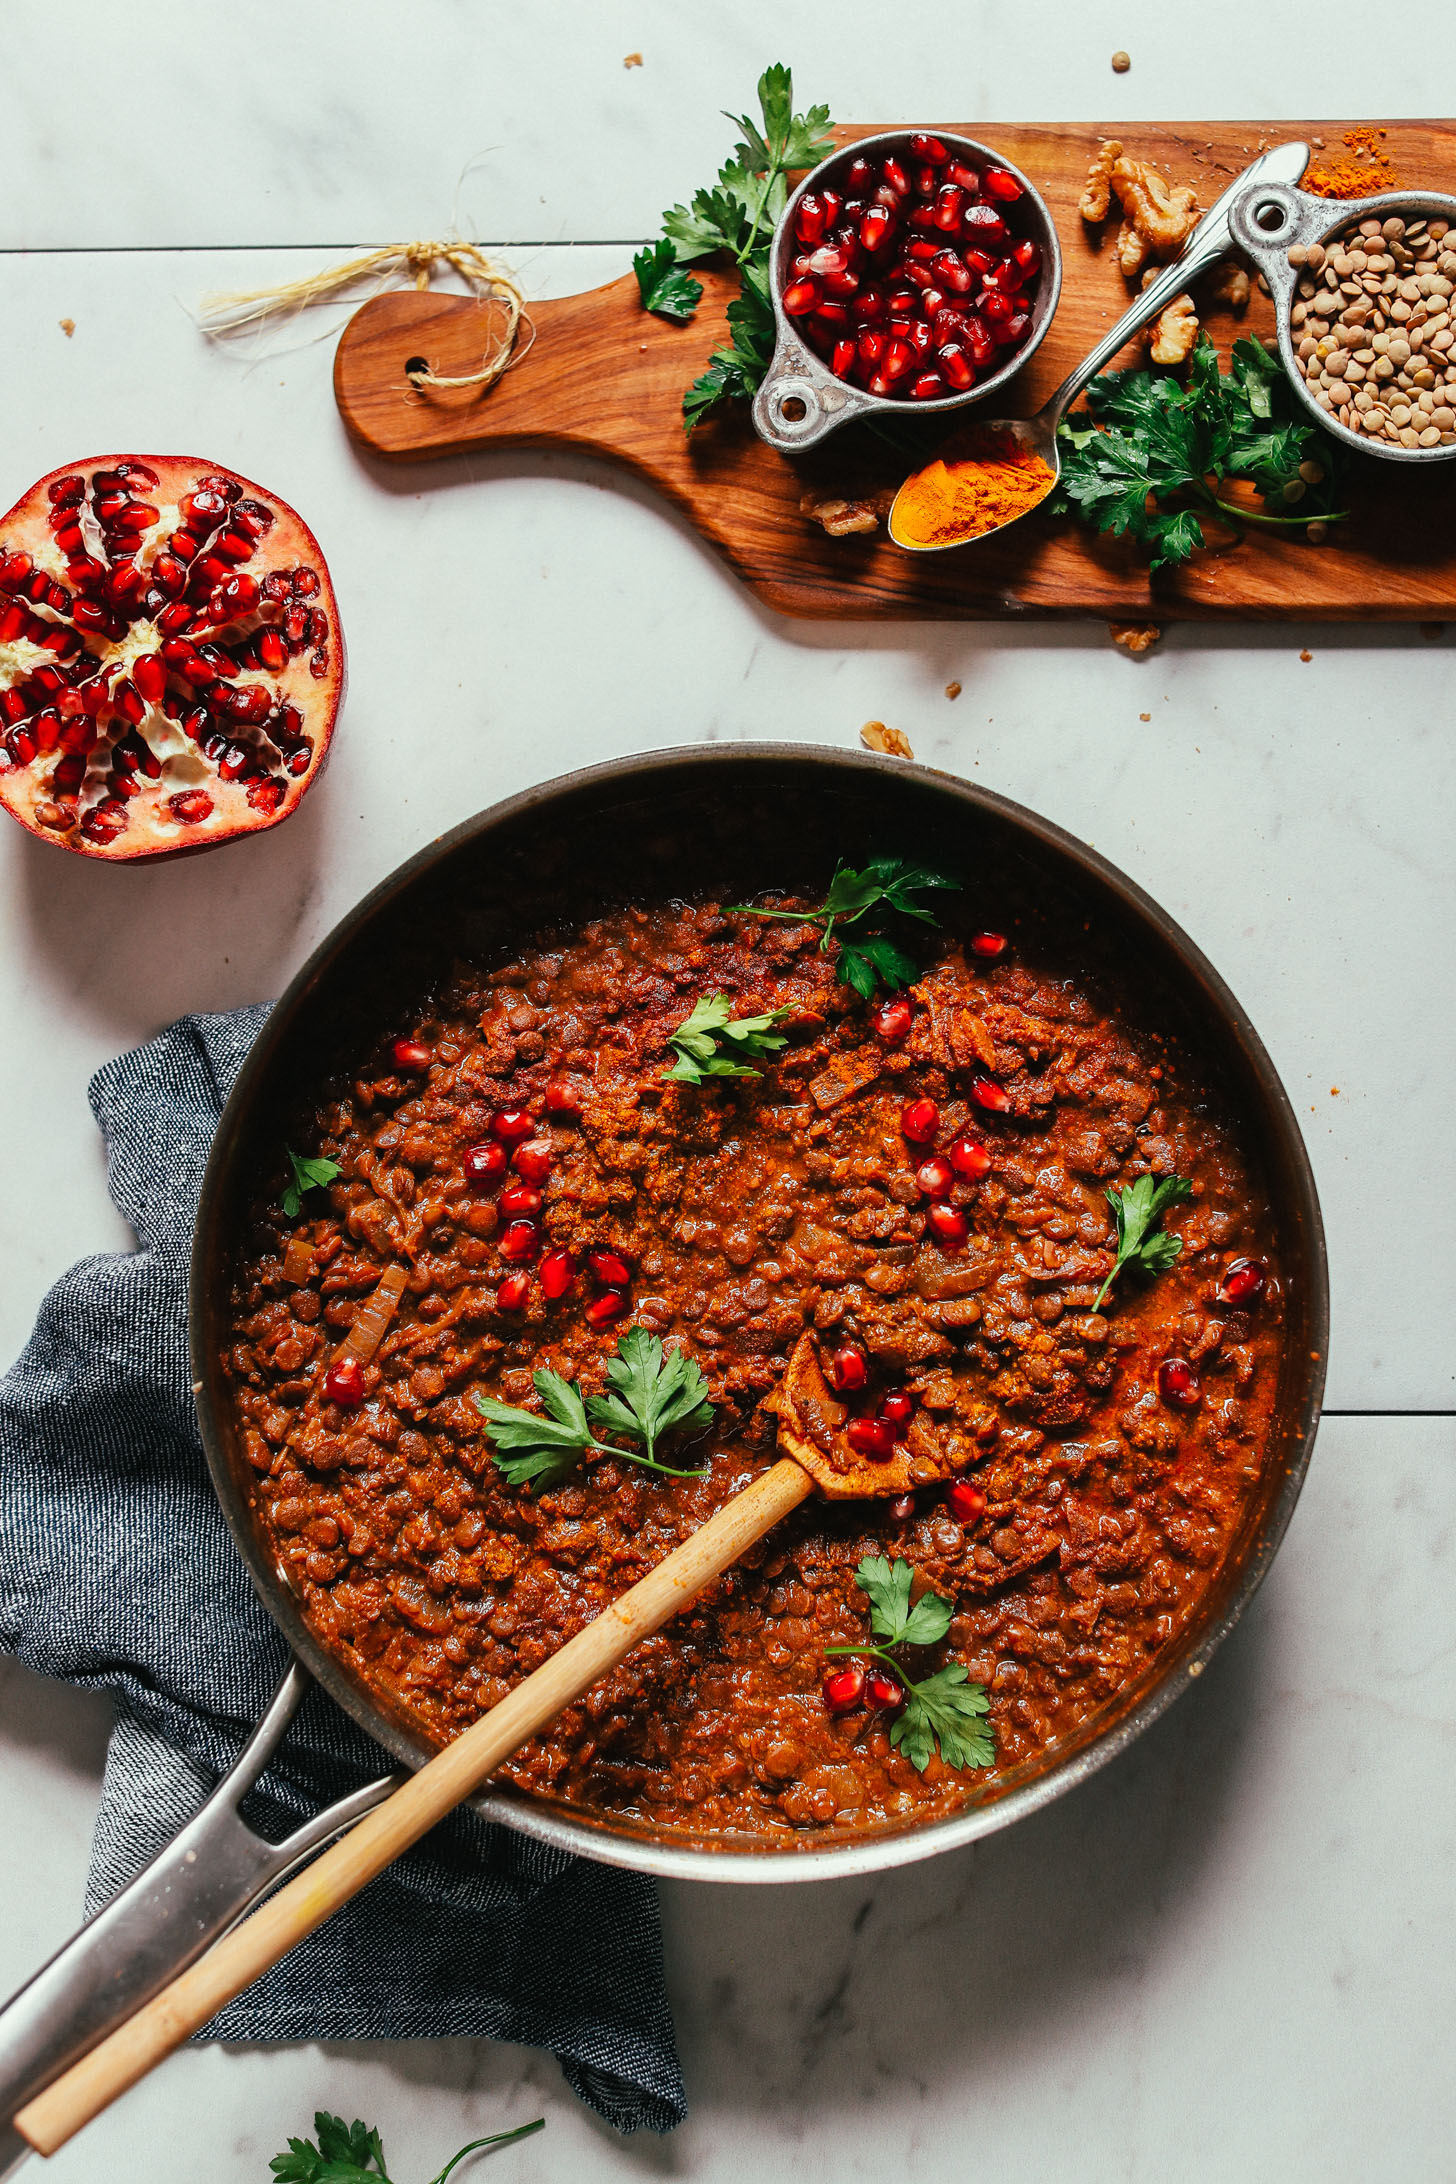 Skillet filled with hearty and flavorful Lentil Fesenjan